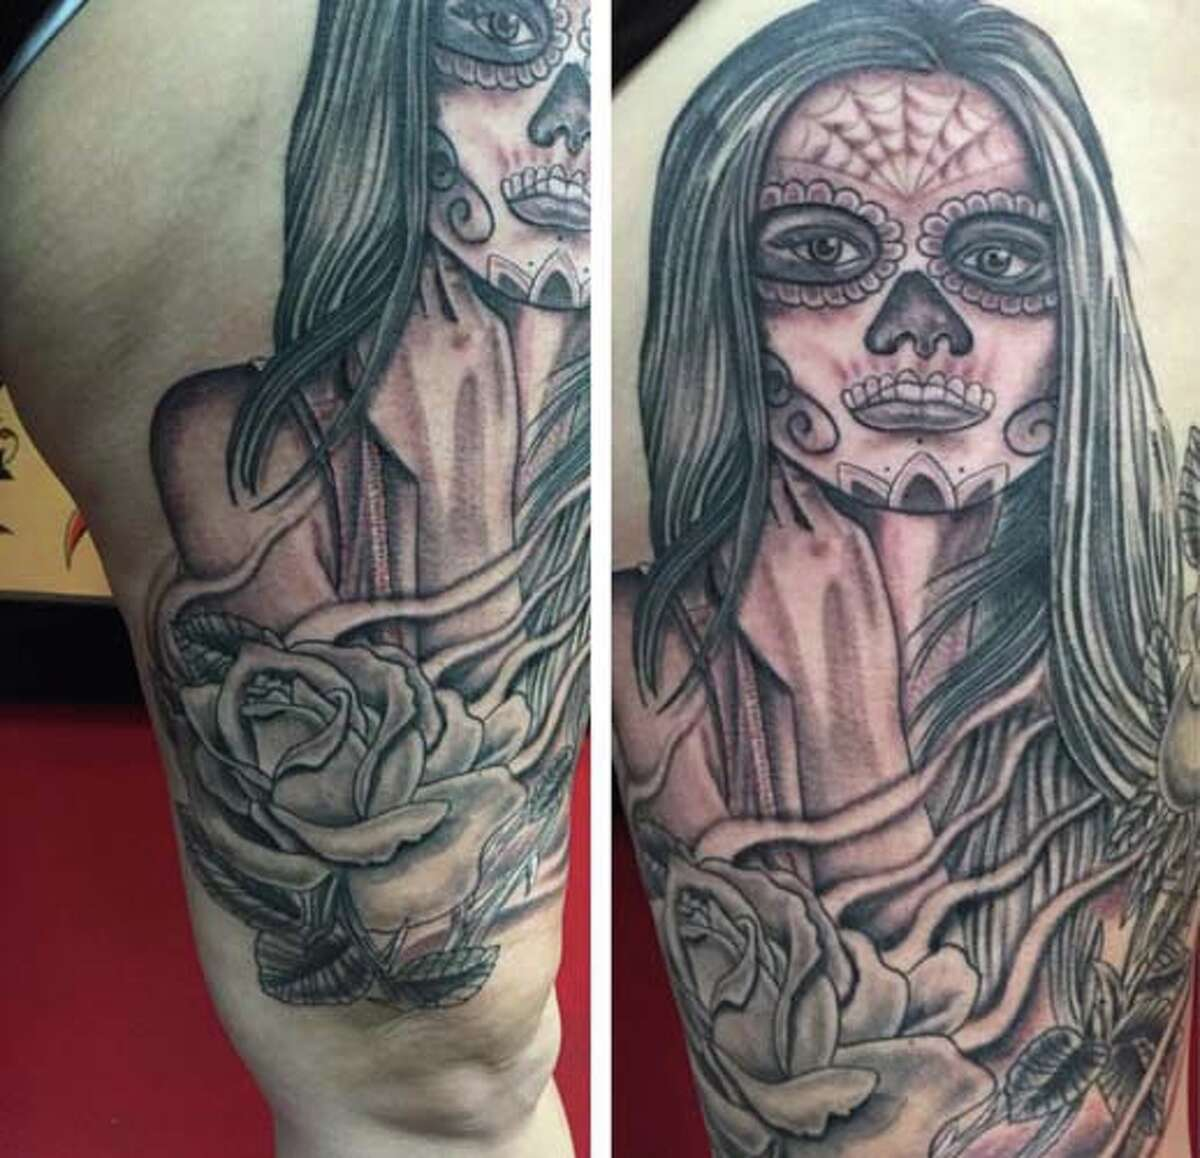 Tattoo art created by Anthony Montemayor of Arc Angel Tattoo.